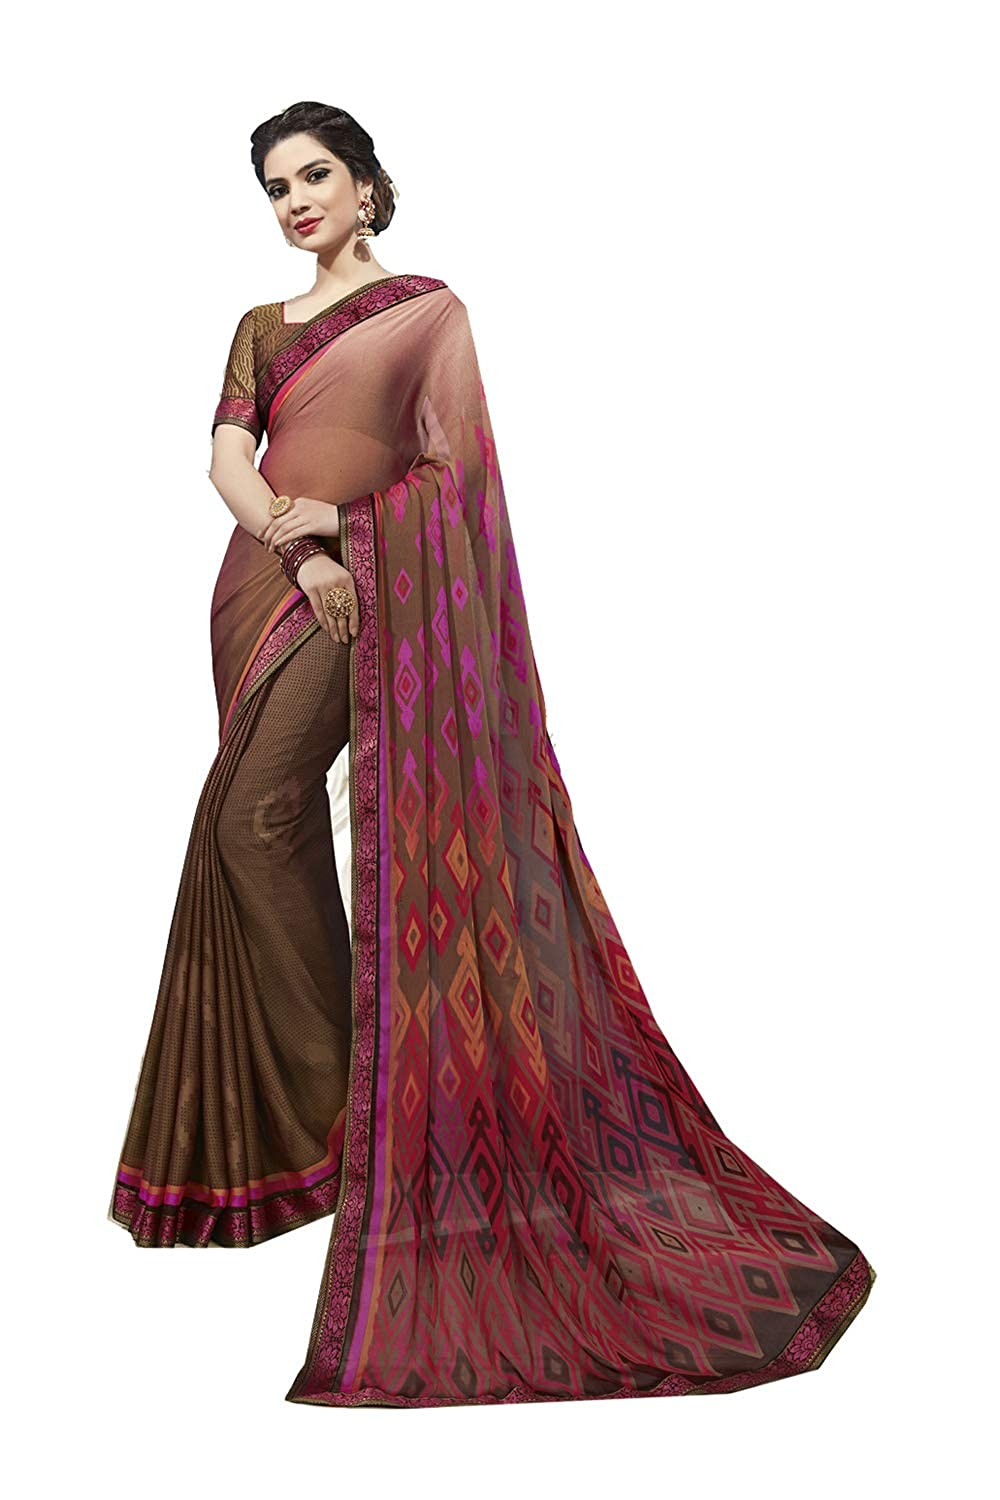 Brown 9 Indian Women Designer Party Wear Ethnic Traditional Saree.